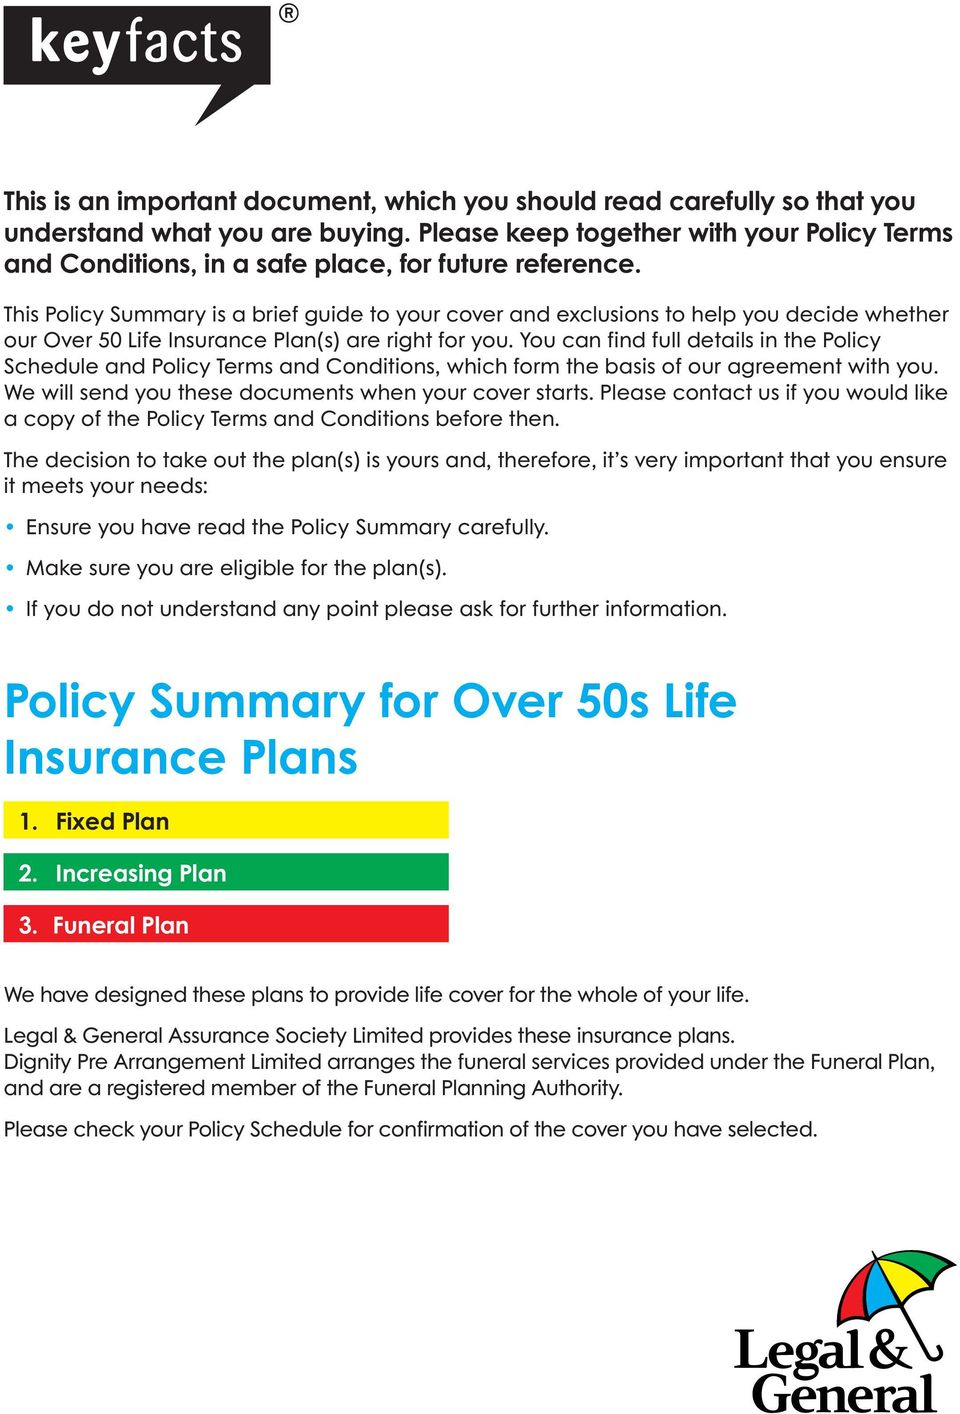 This Policy Summary is a brief guide to your cover and exclusions to help you decide whether our Over 50 Life Insurance Plan(s) are right for you.